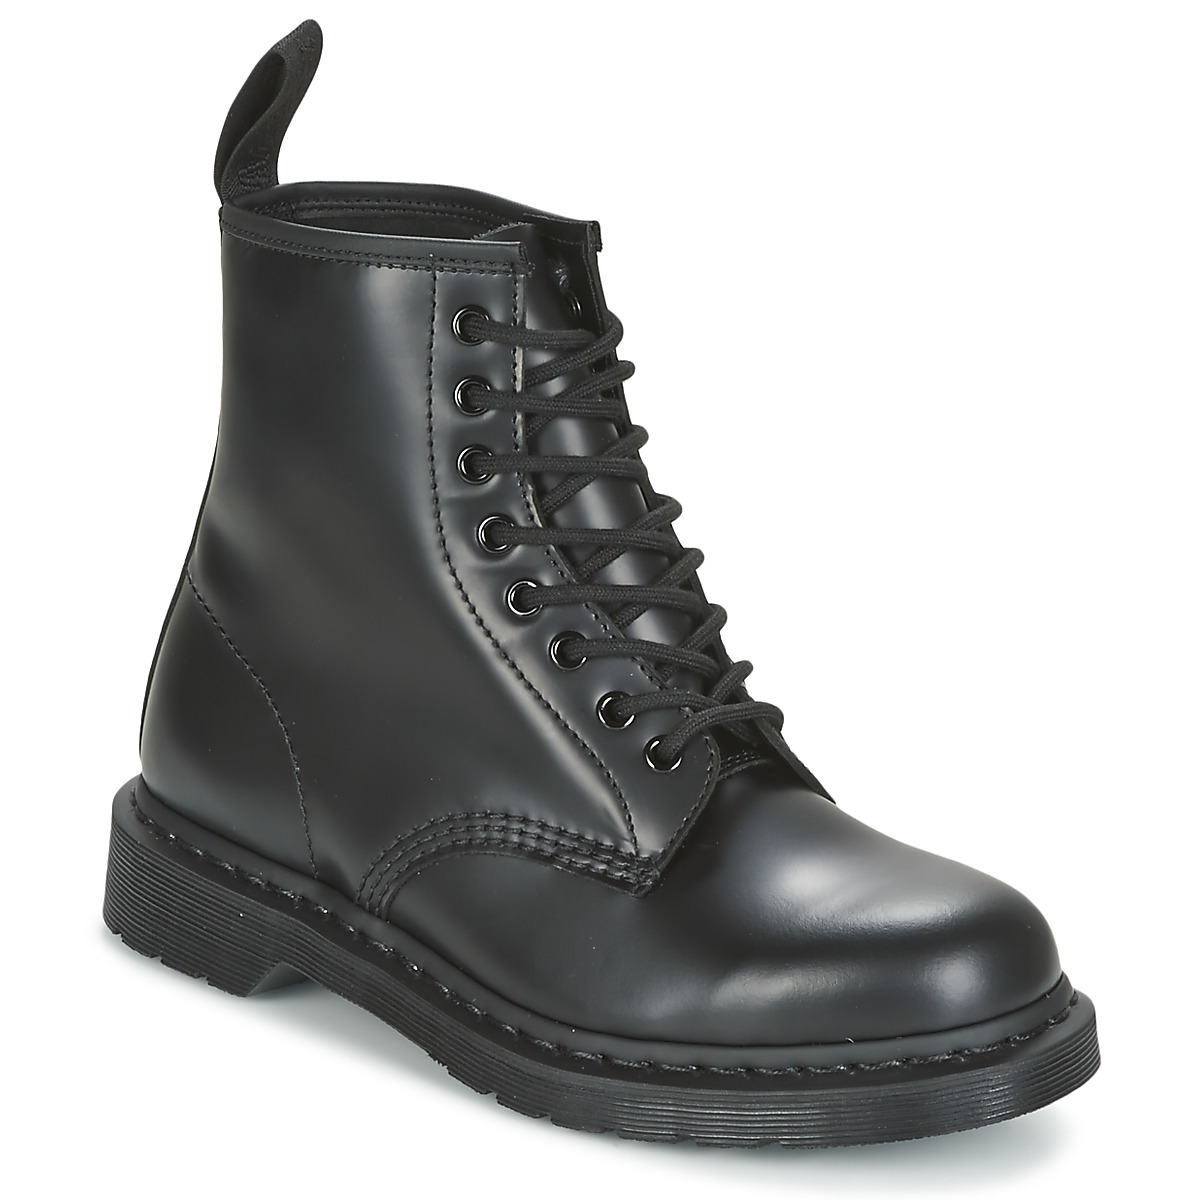 5b614eb9f9b1 Chaussures Boots Dr Martens 1460 MONO Noir Smooth